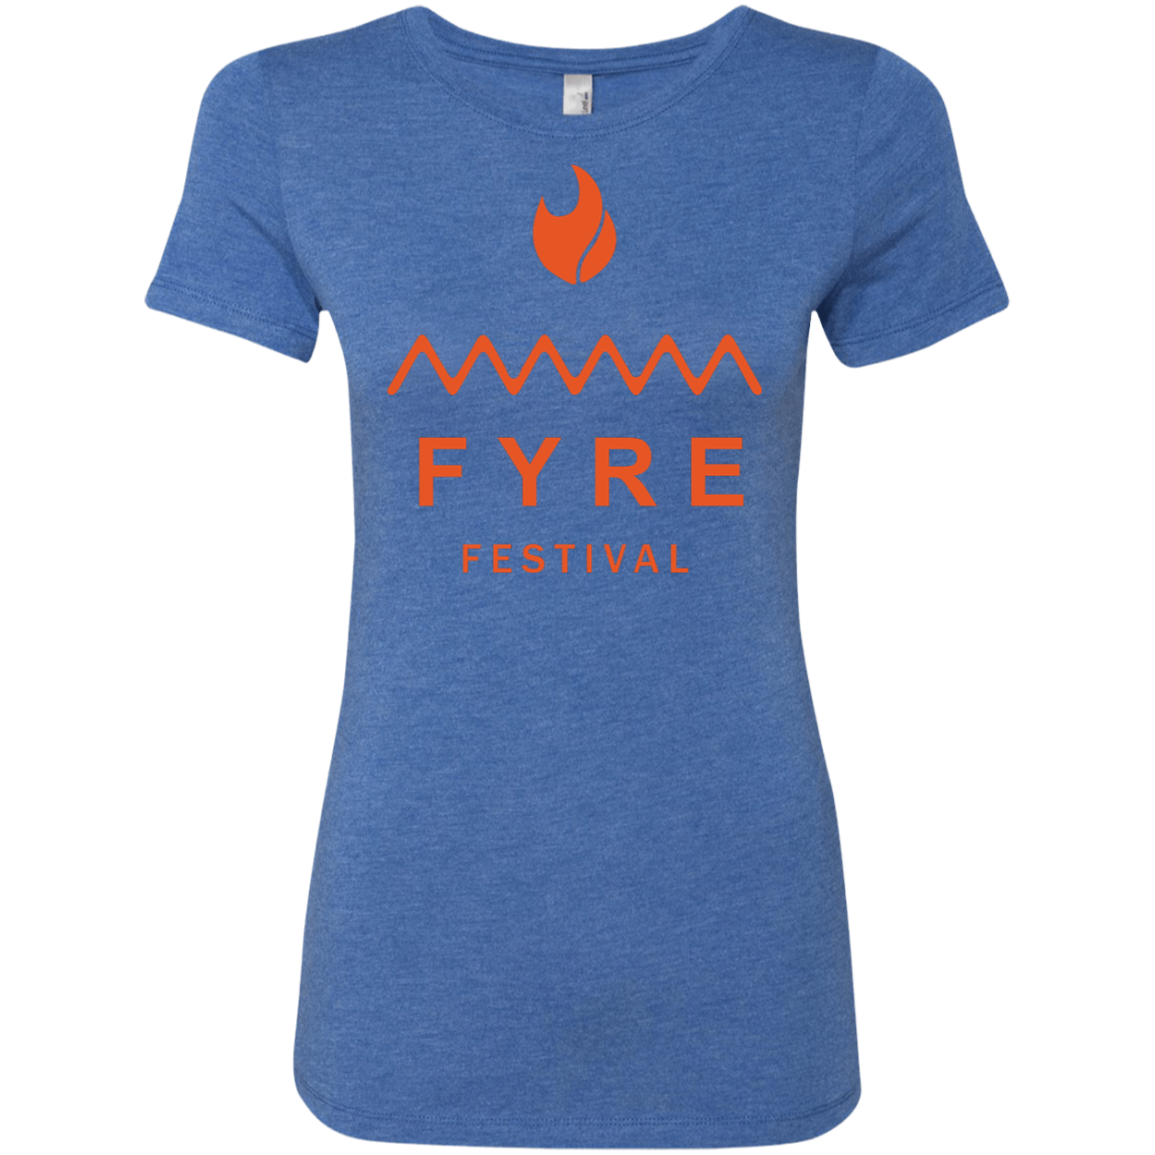 Fyre Festival was Lit Orange Women's Classic Tee - Trendy Tees